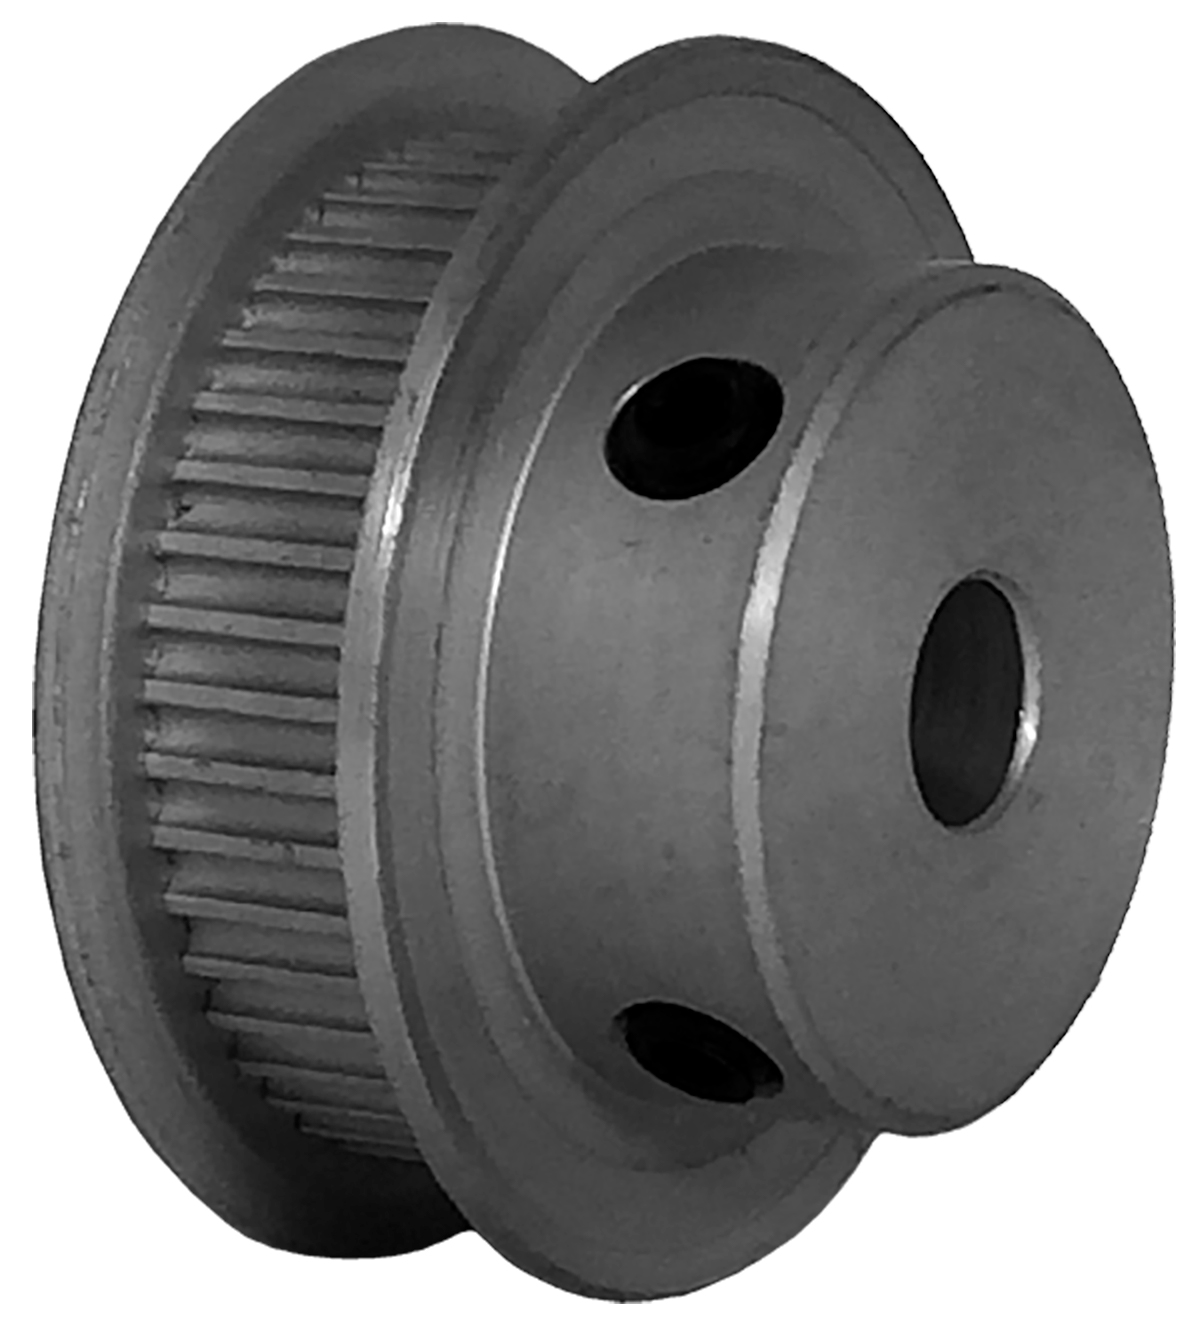 45-2P06-6FA3 - Aluminum Powerhouse® Pulleys